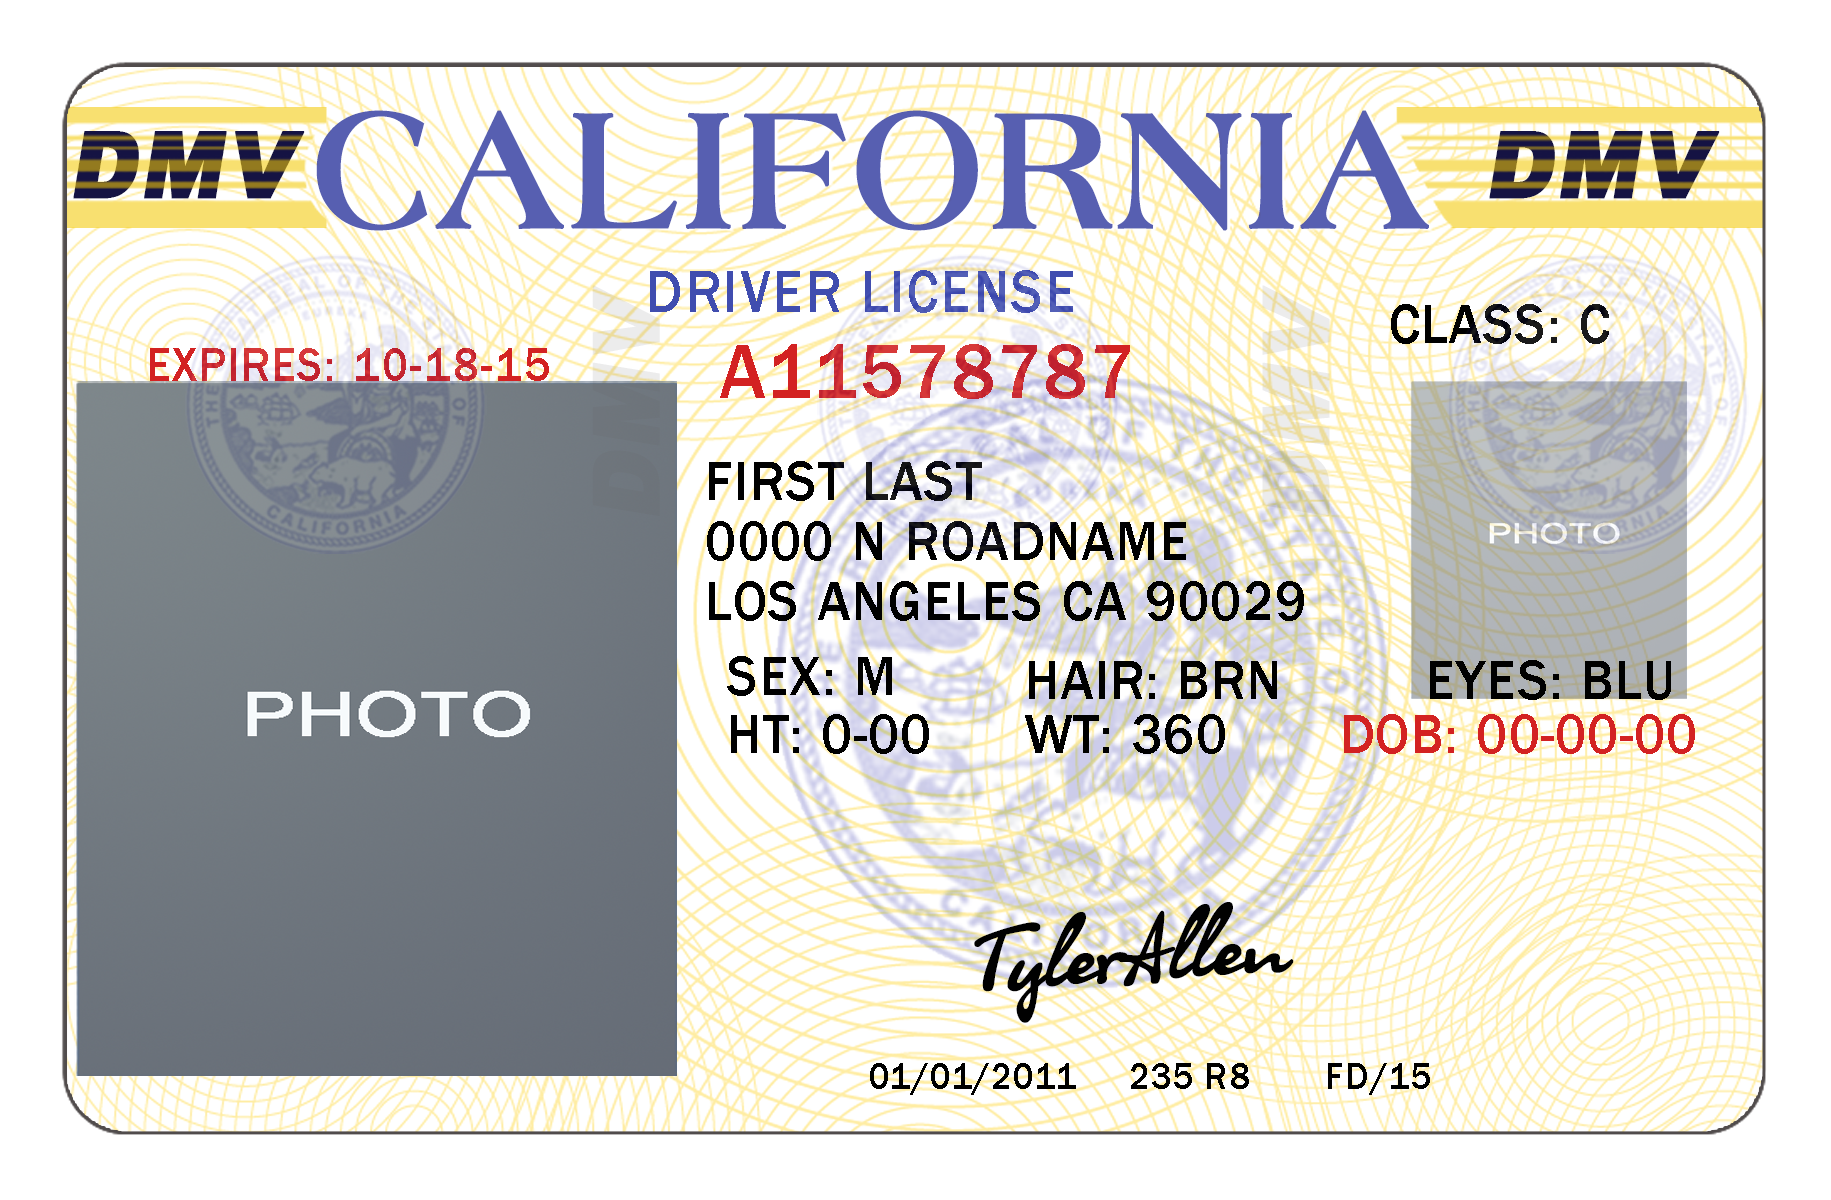 texas temporary drivers license template - 10 california drivers id template psd images california